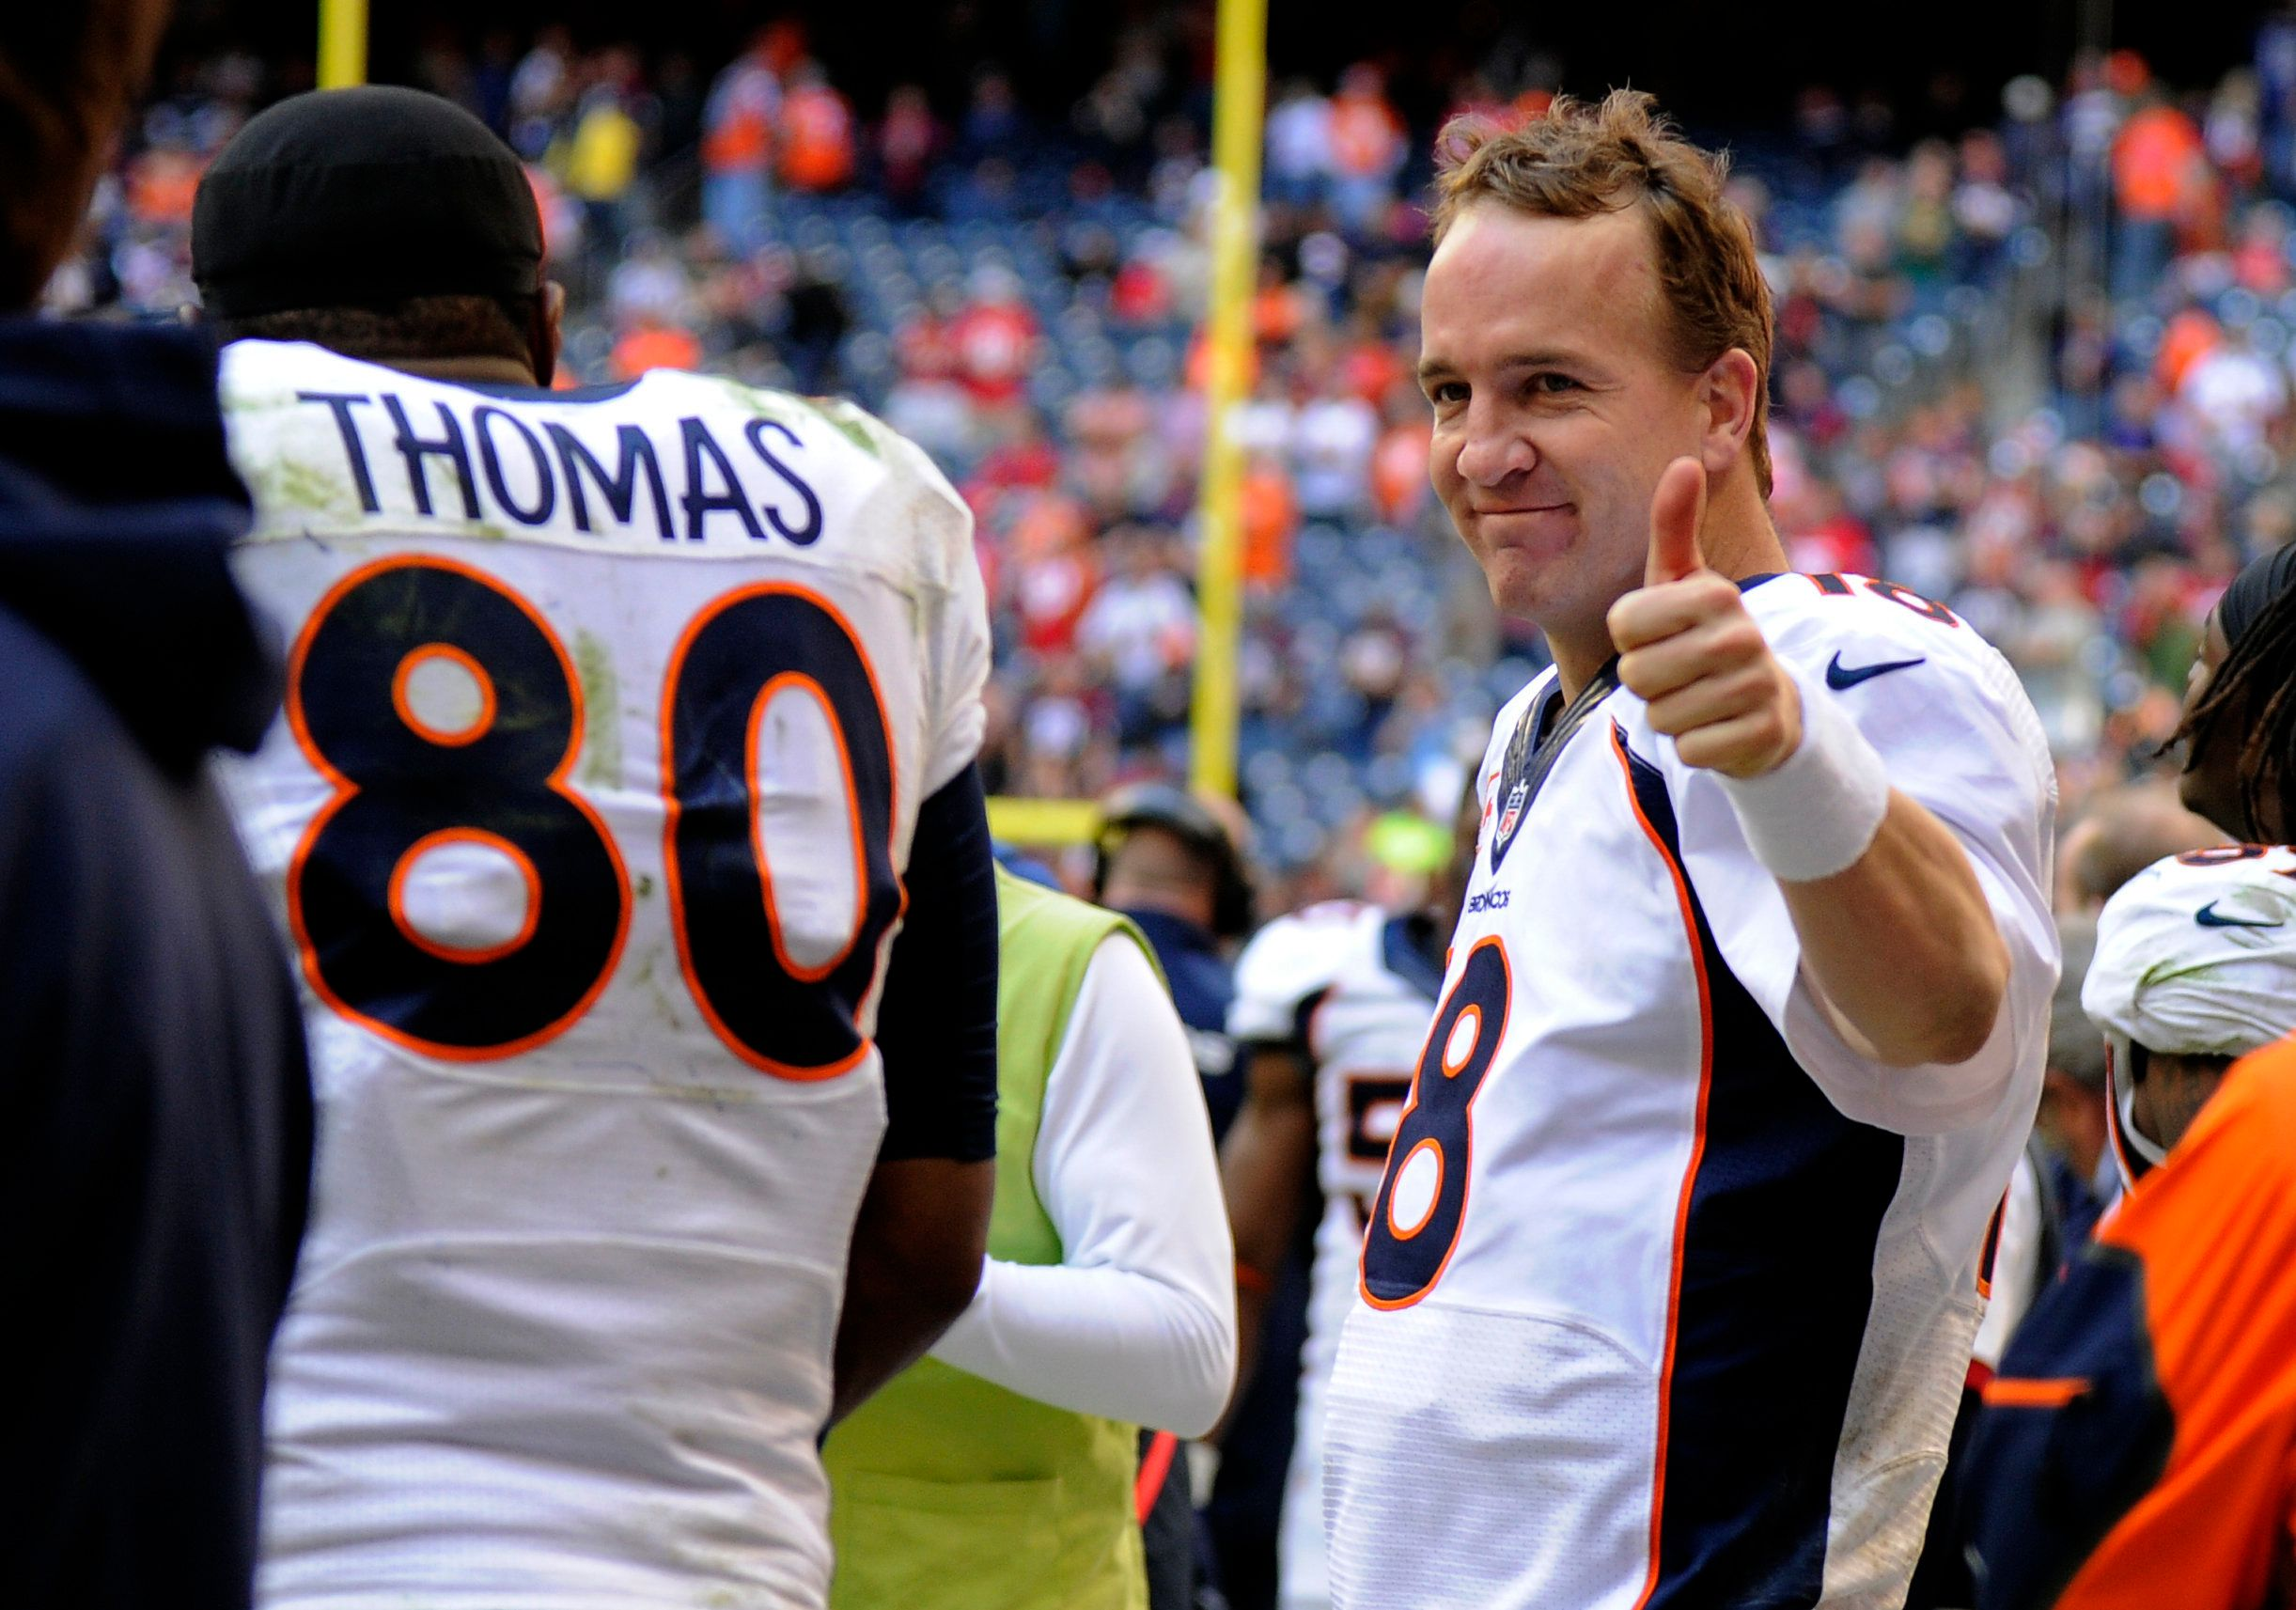 HOUSTON, TX - DECEMBER 22: Denver Broncos quarterback Peyton Manning (18) gives the thumbs up after talking to Broncos tight end Julius Thomas (80) on the bench after throwing his record breaking 51st pass to him for a touchdown in the fourth quarter against the Houston Texans December 22, 2013 at Reliant Stadium. (Photo by John Leyba/The Denver Post via Getty Images)